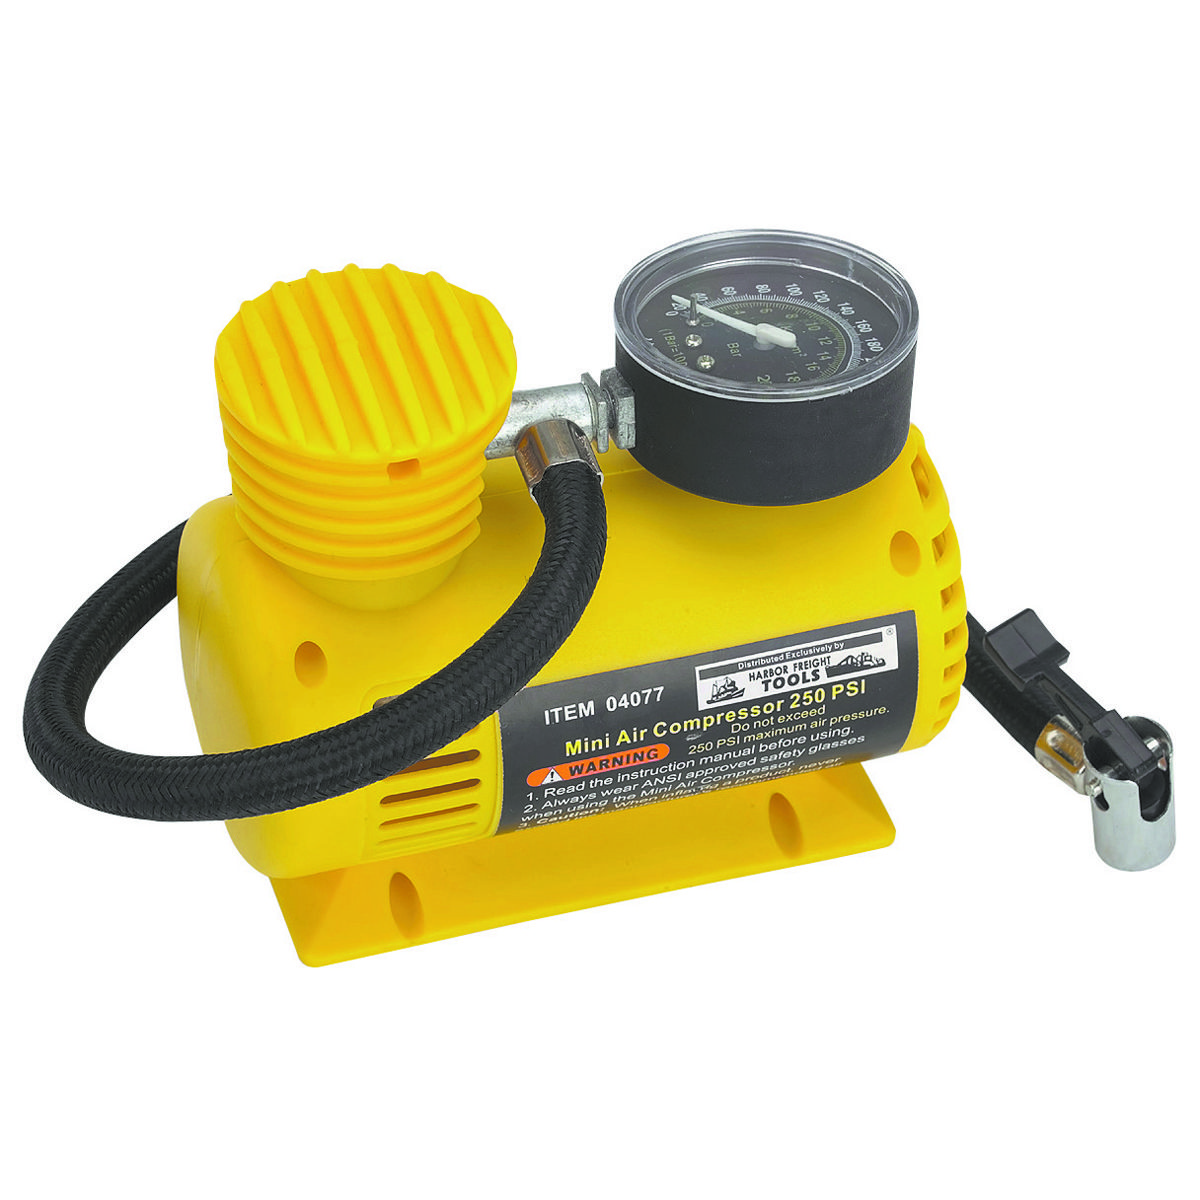 12V 150 PSI Portable Inflator Air compressor and Compact